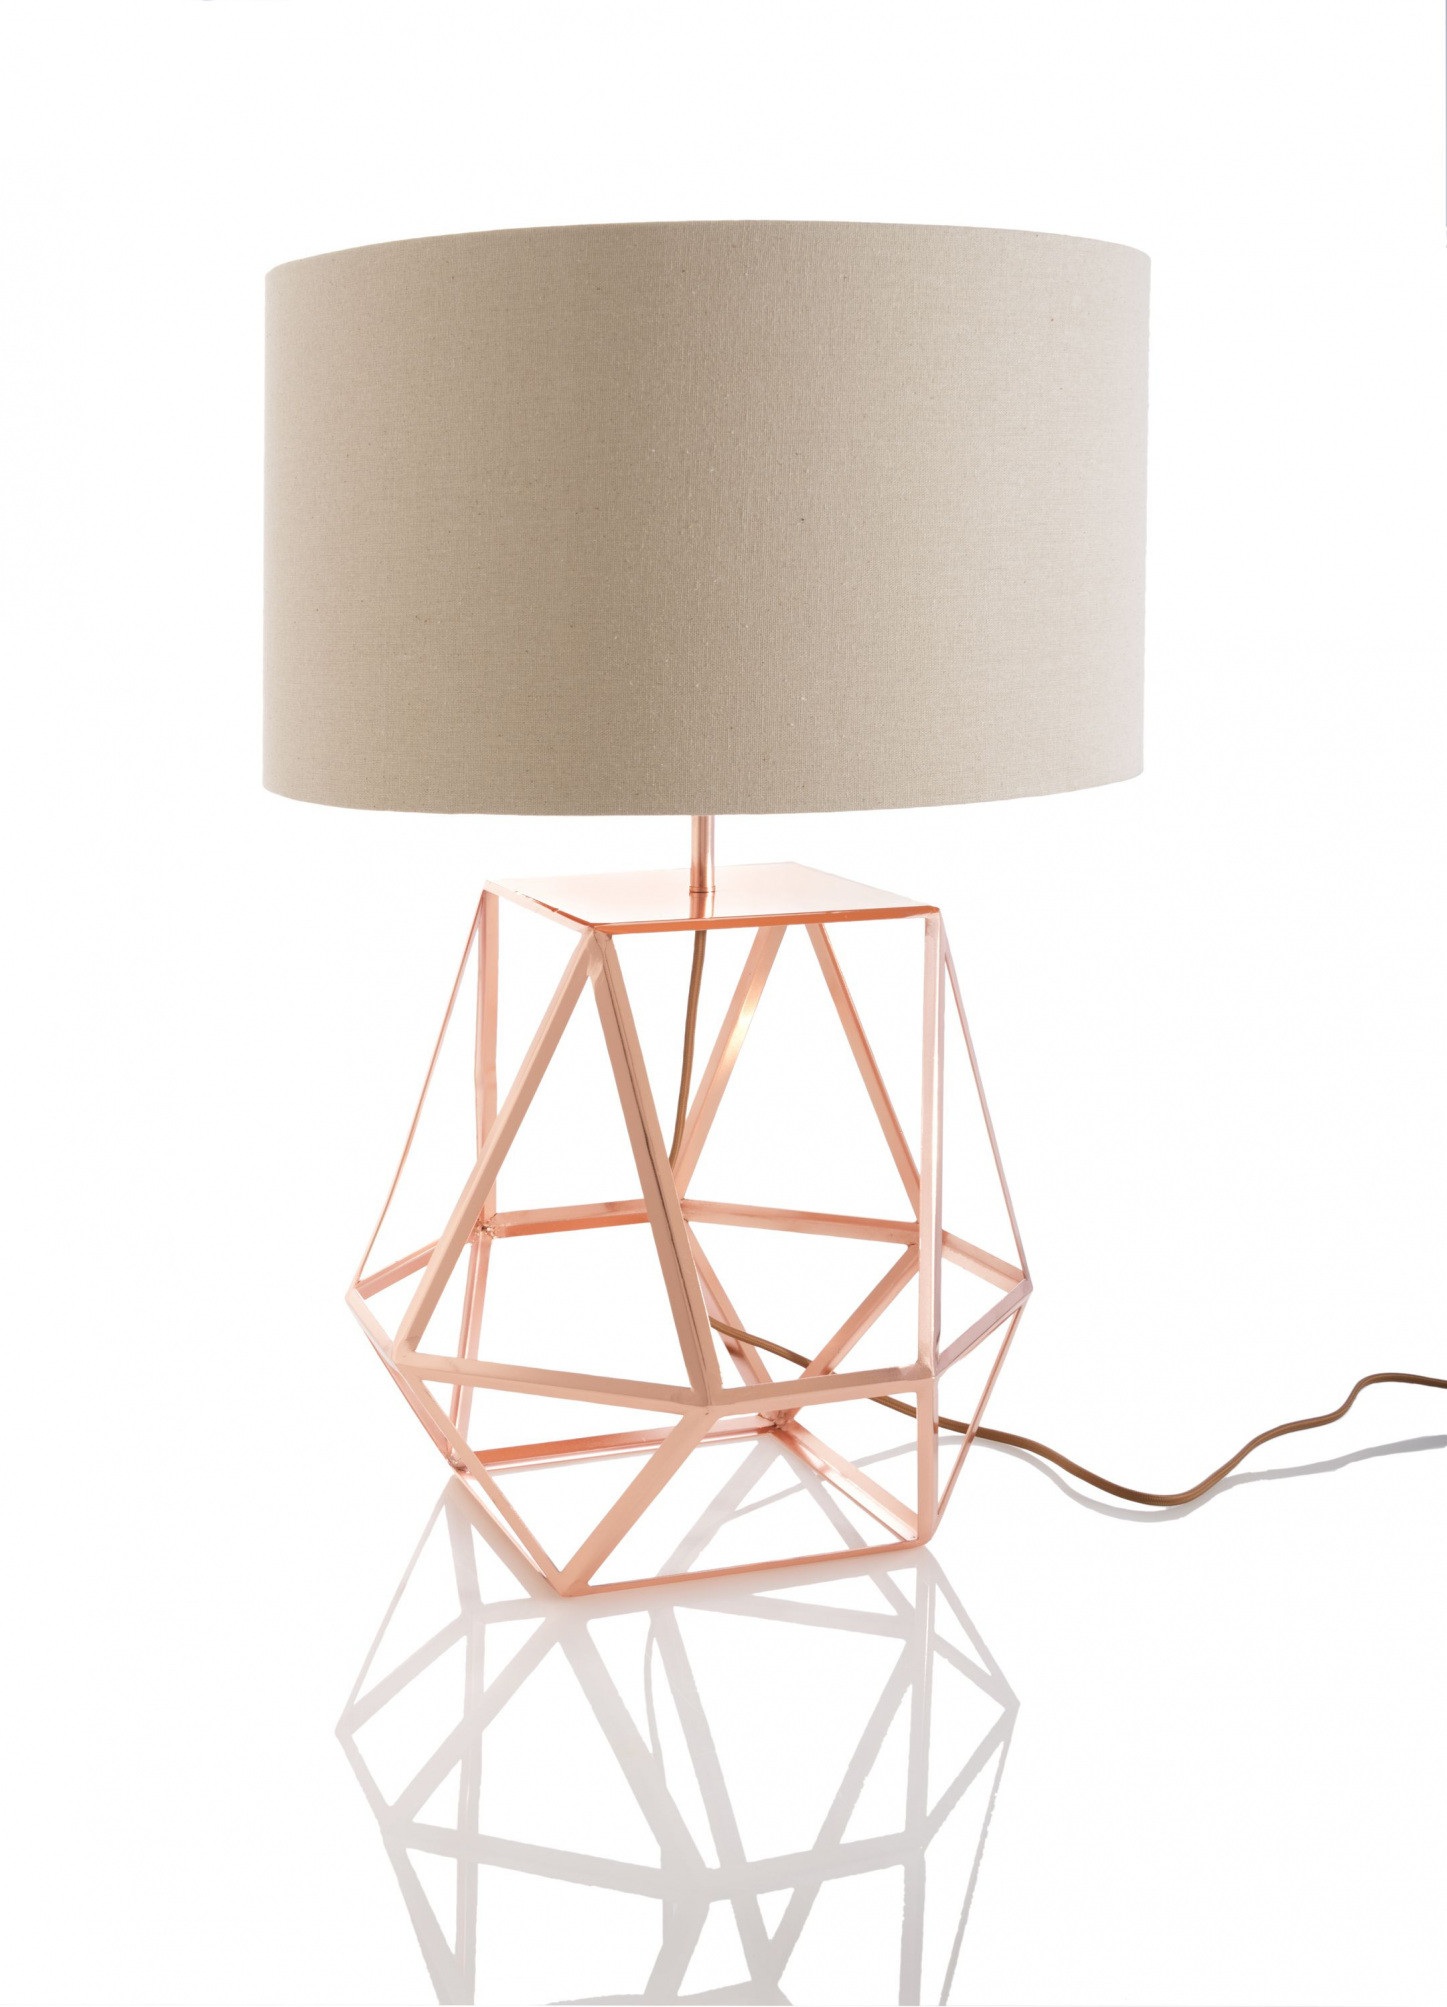 ceramic vase table lamps of table lamp base bedroom table lamp a textural linen lamp shade a pertaining to table lamp base bedroom table lamp a textural linen lamp shade a luxe copper base table lamps